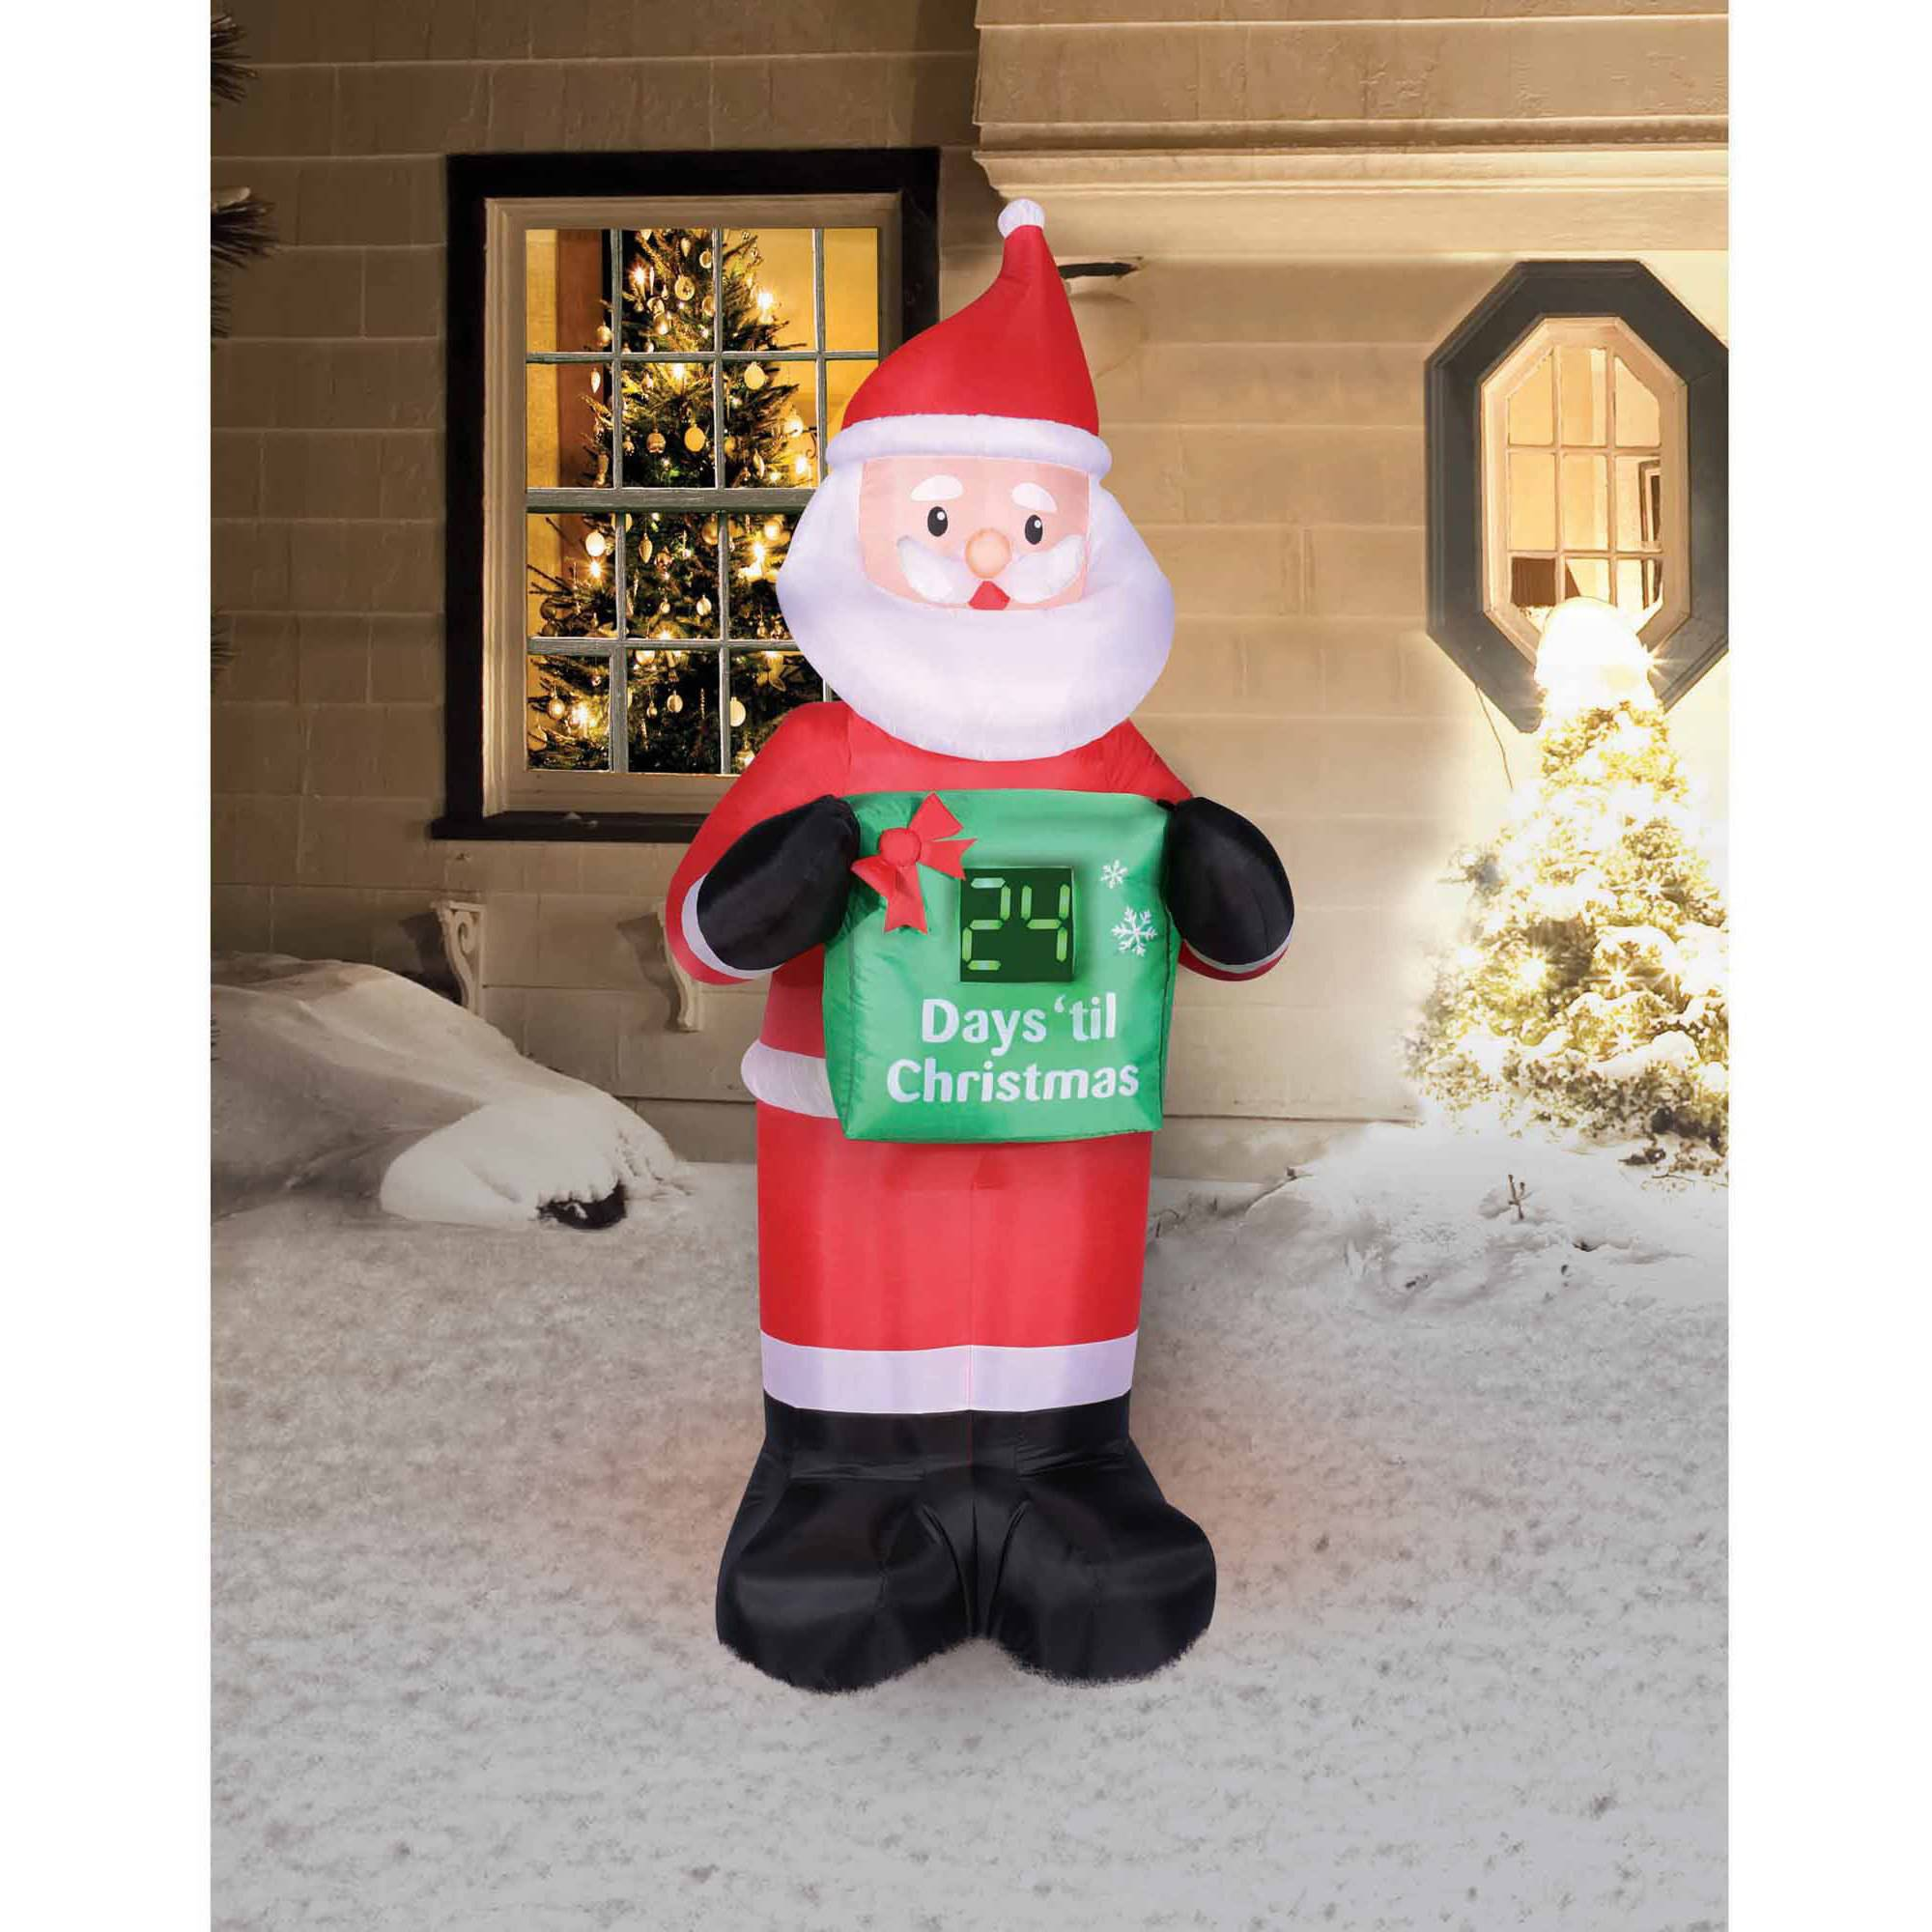 holiday time 7 countdown calendar santa christmas inflatable walmartcom - Outdoor Christmas Inflatables